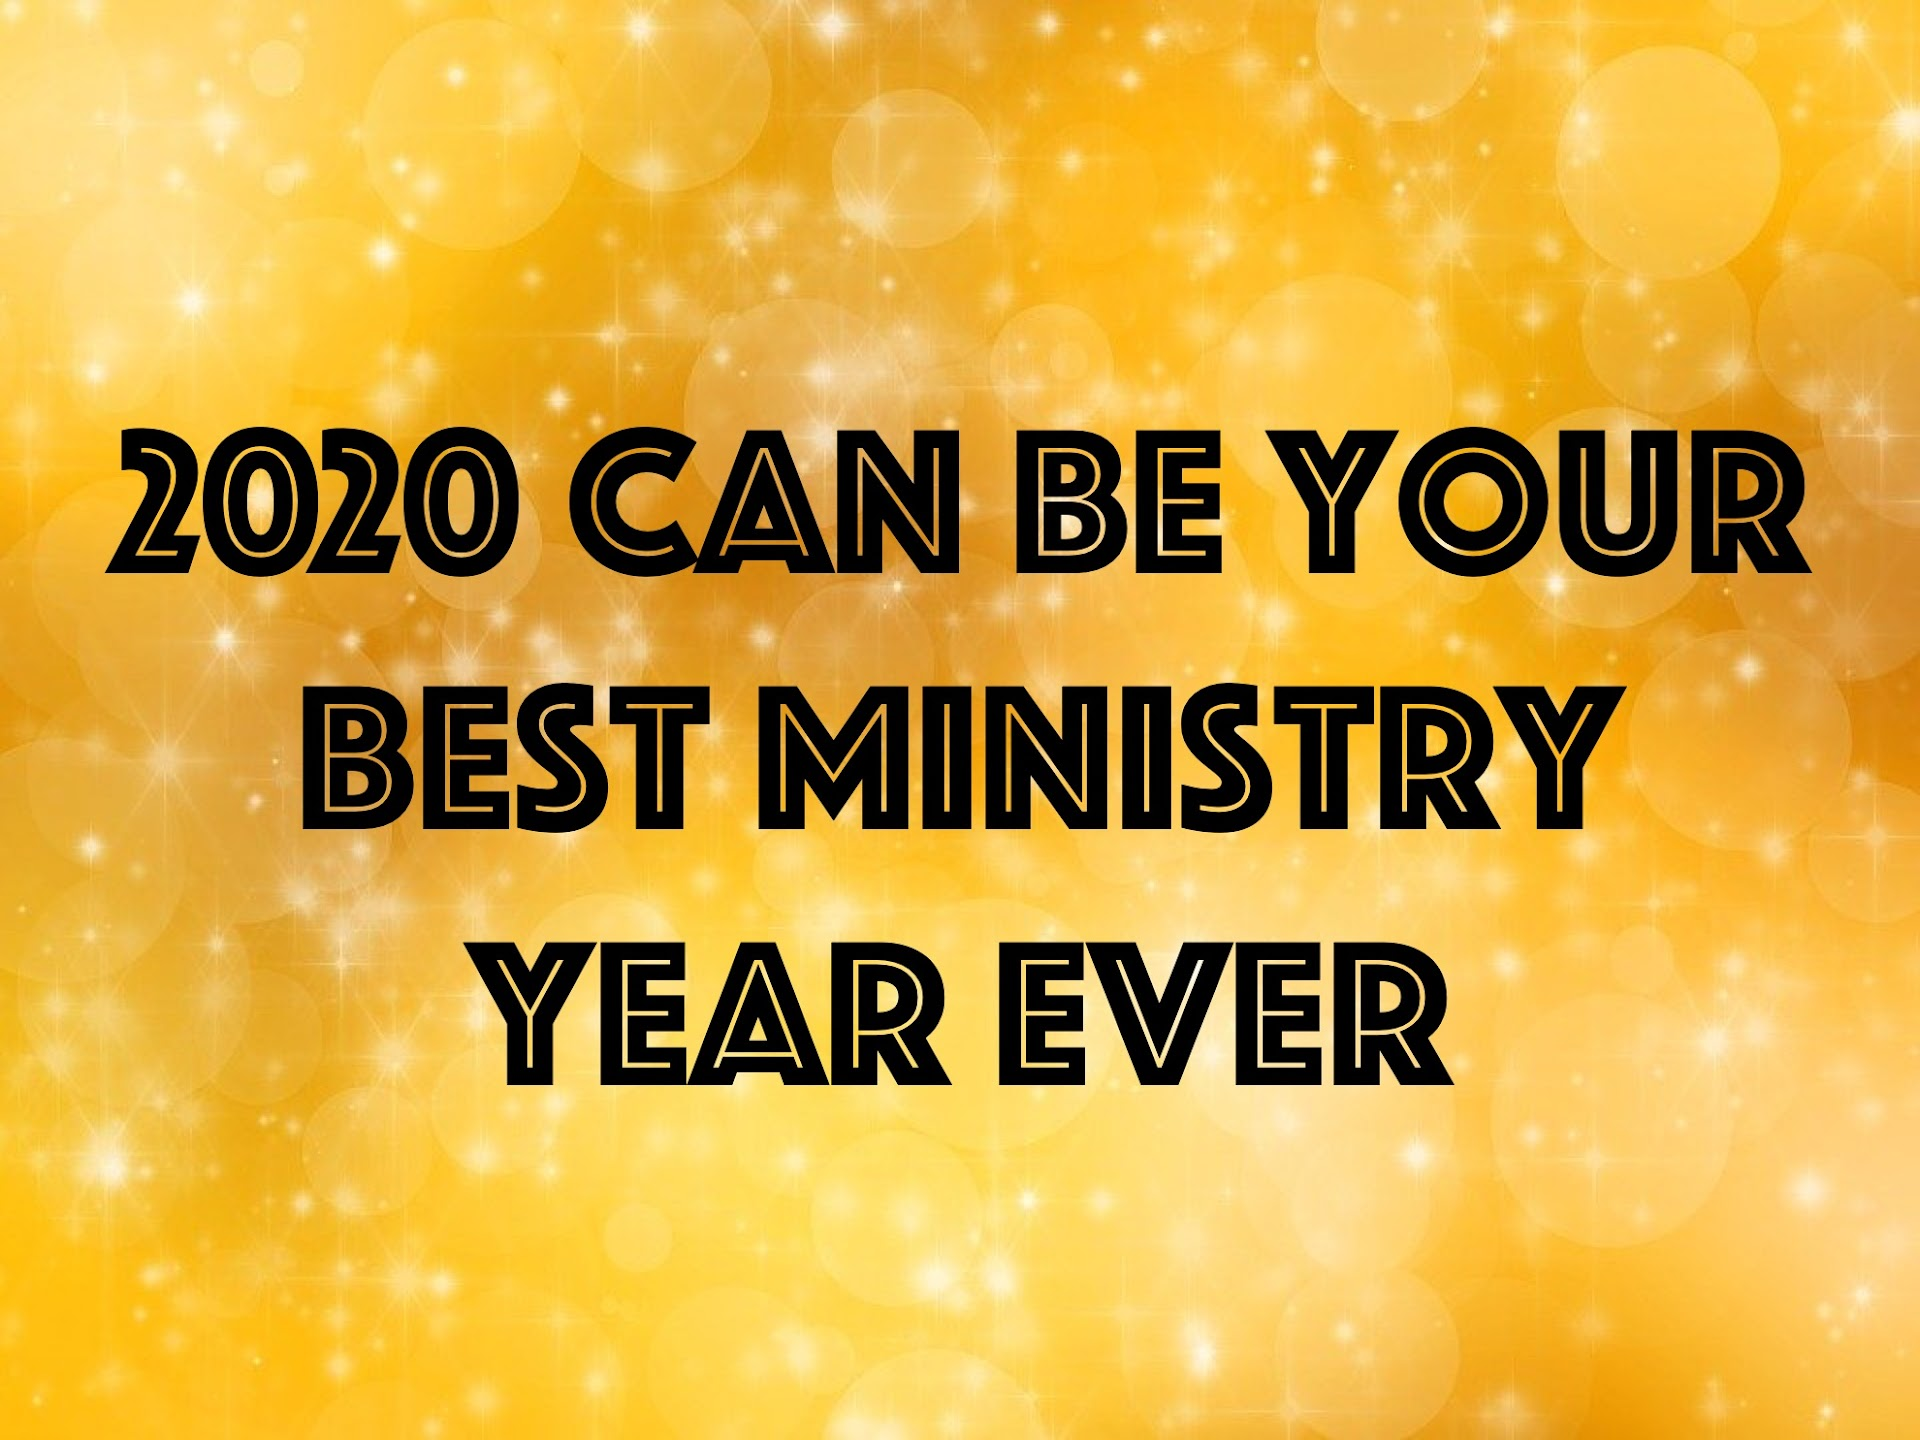 2020 Can Be Your Best Ministry Year Ever